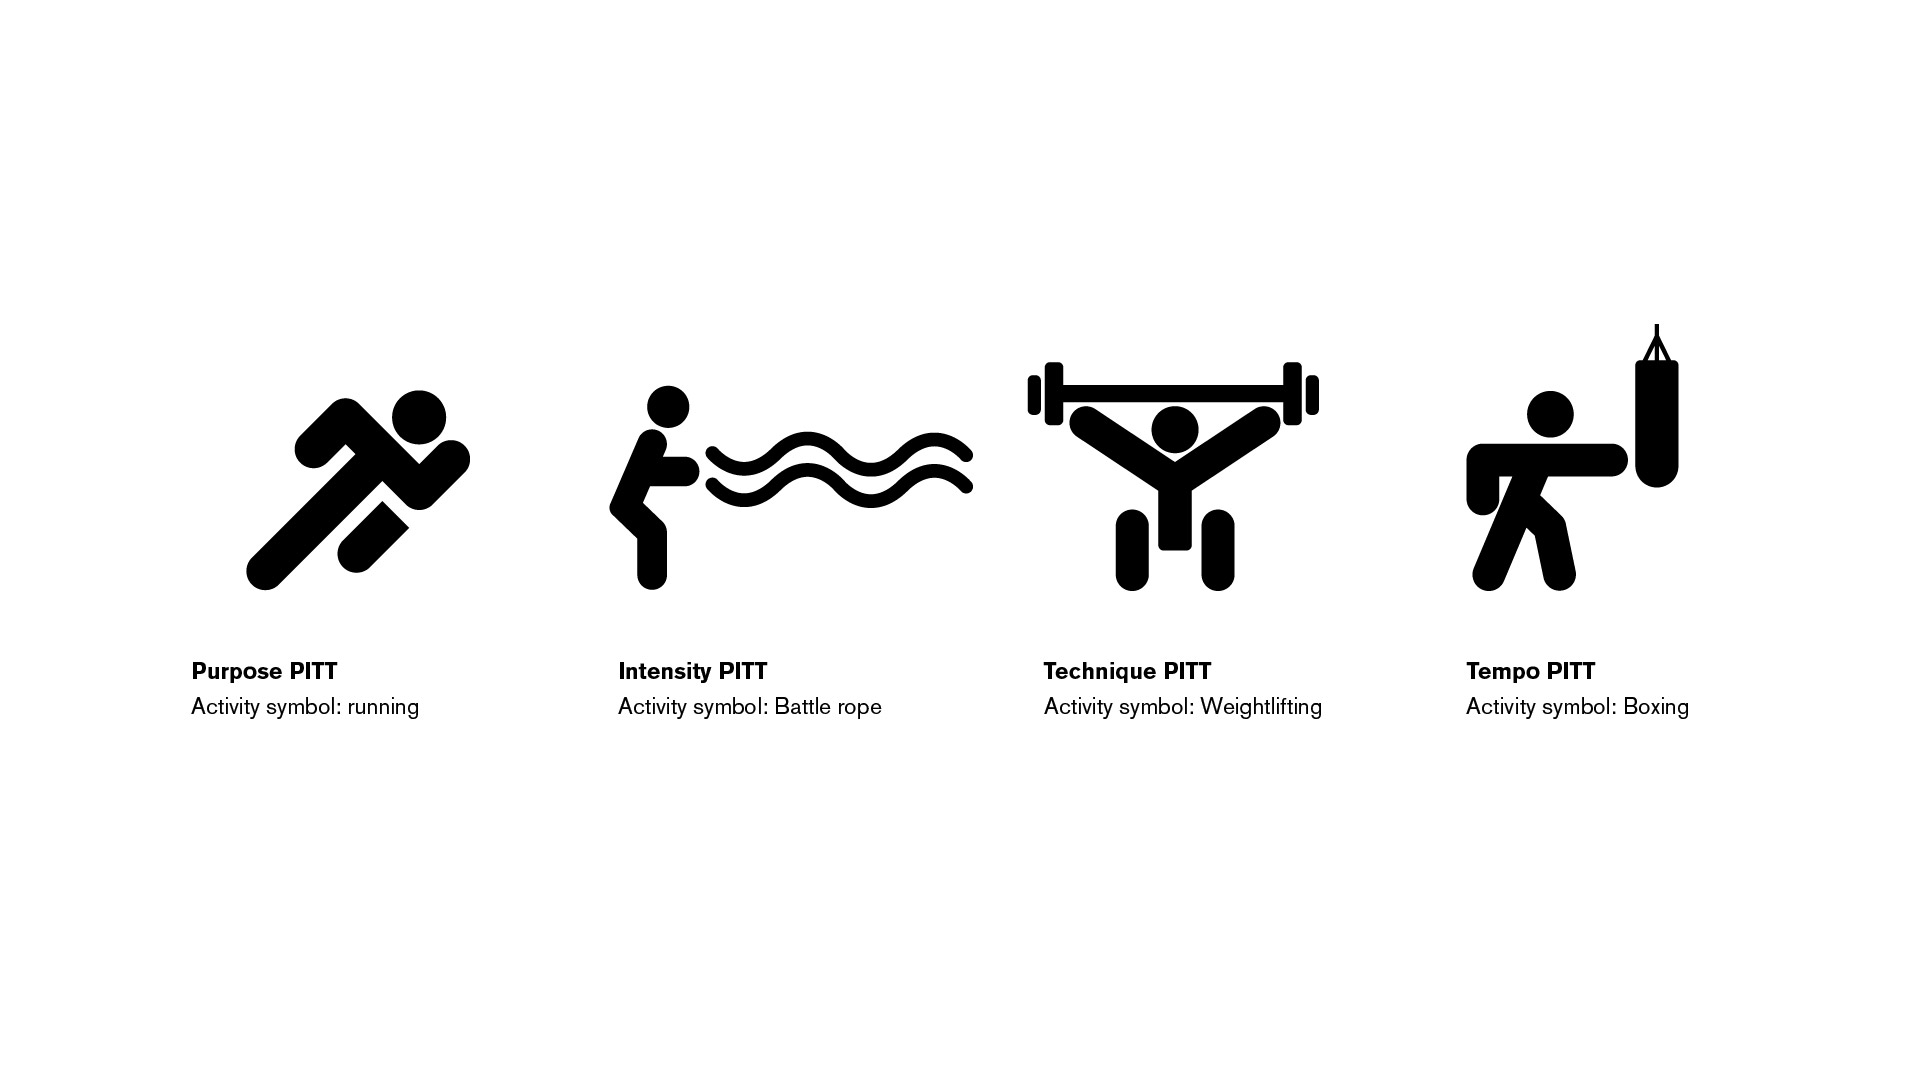 The P.I.T.T.'s graphic elements. Representing their workout concepts. The icons are inspired from Olympic's sport pictograms.